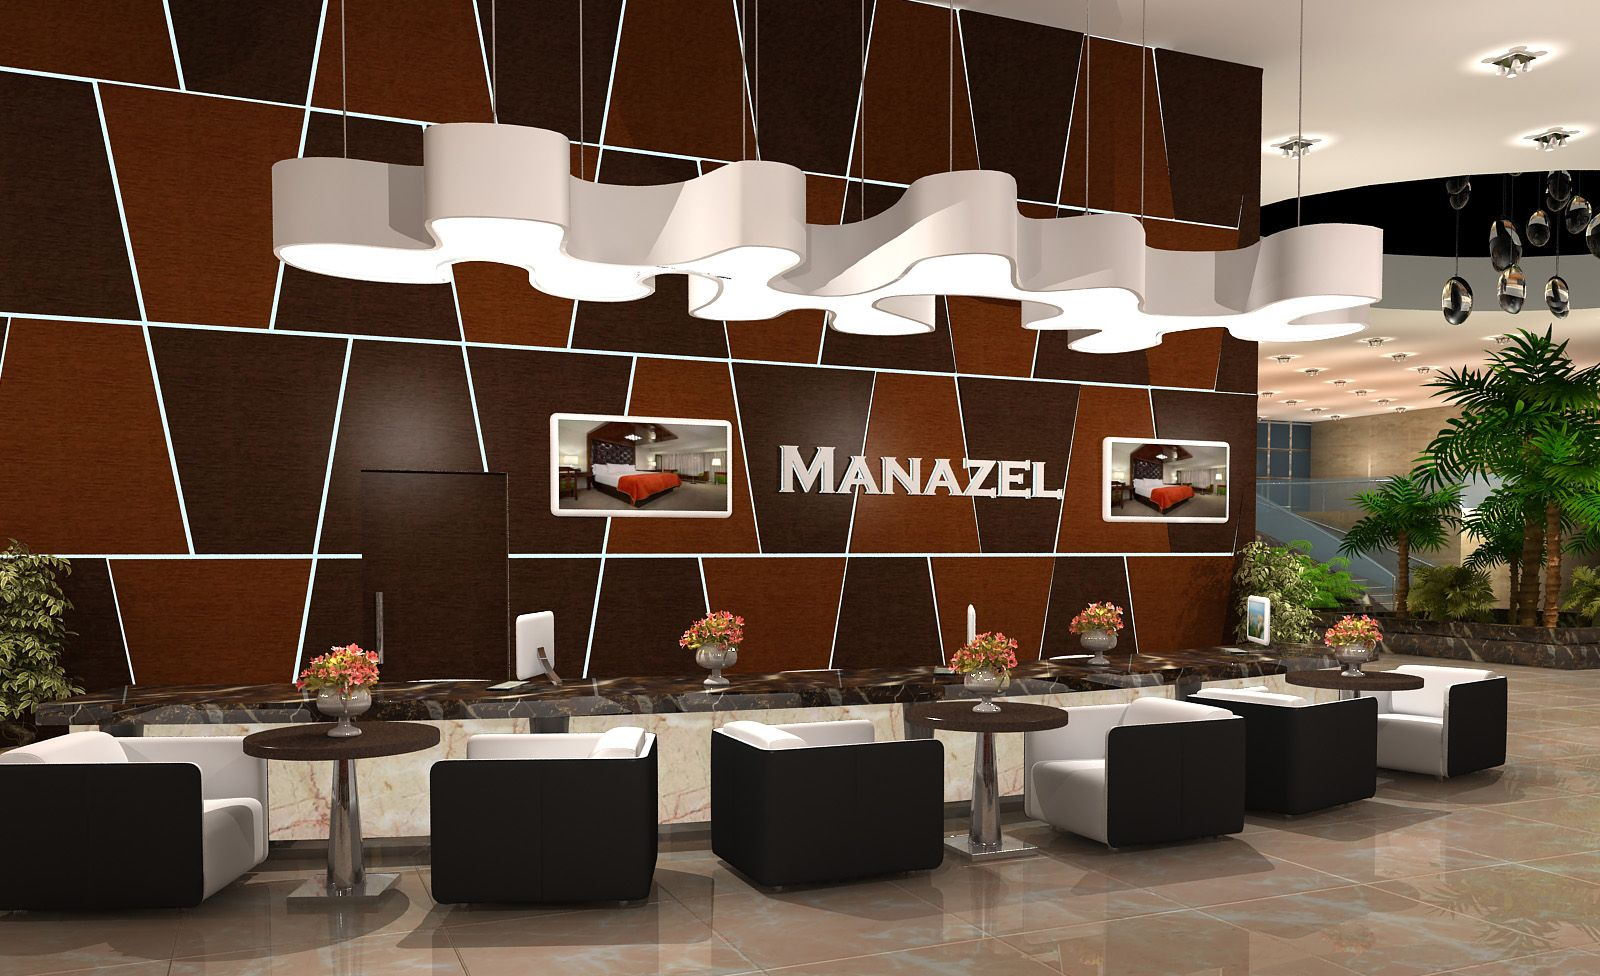 The first ferry manazil five star hotel lobby design for Hotel interior decoration